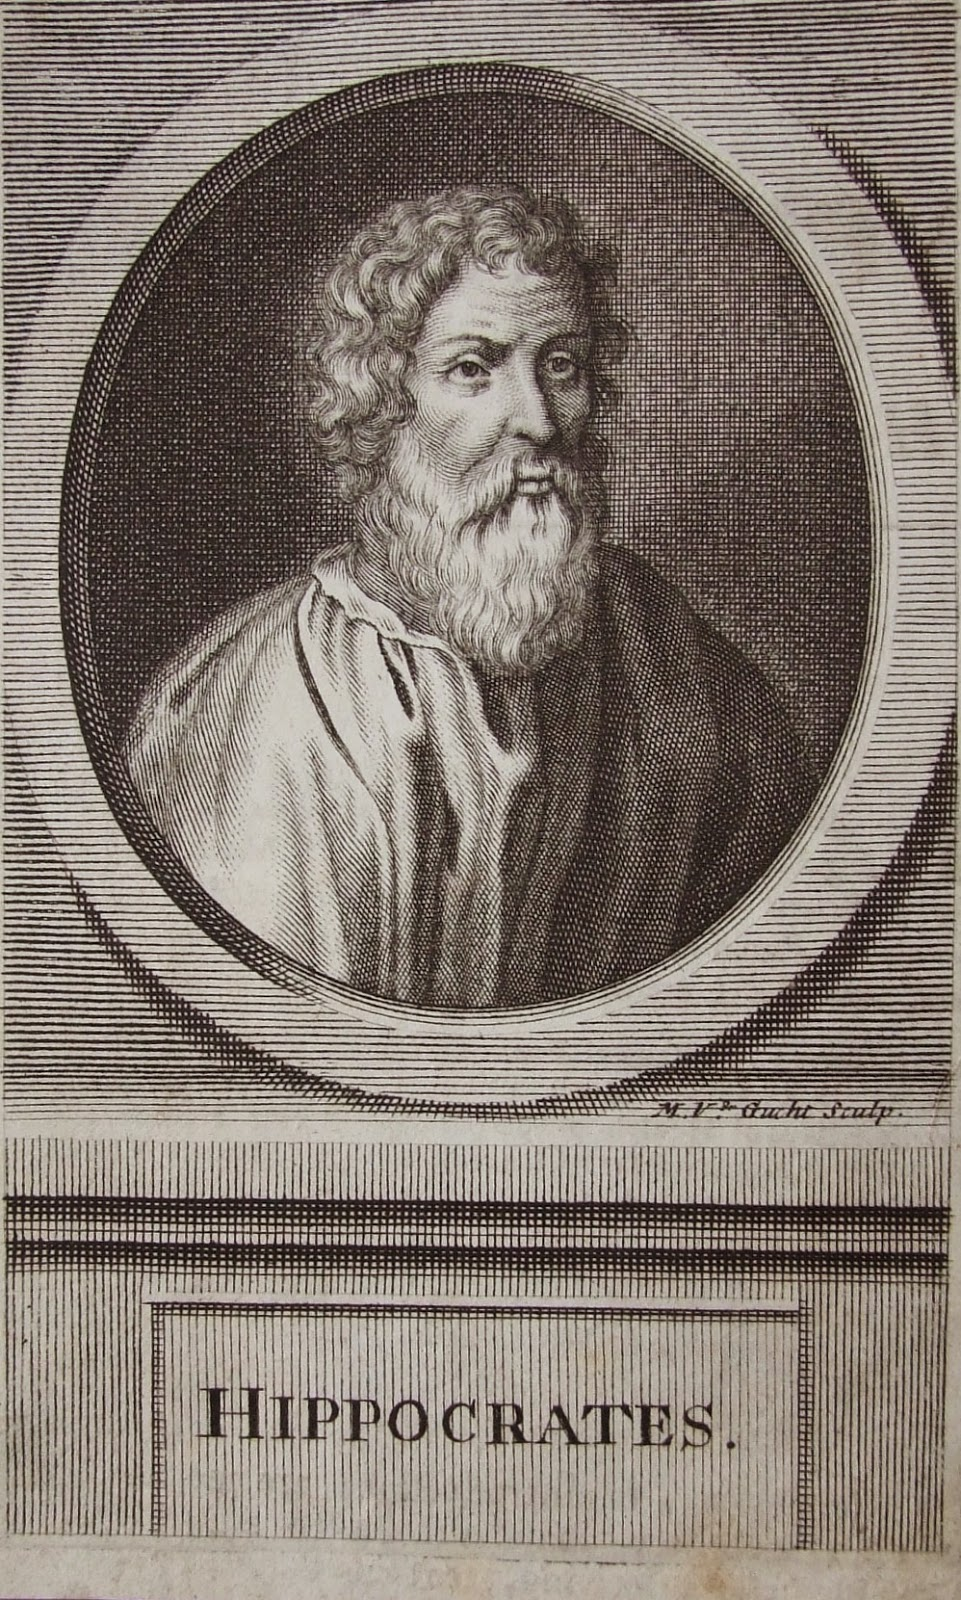 hippocrates the father of modern medicine essay Although hippocrates probably didn't write the famous oath that father of modern medicine cite this though considered the paragon of modern medicine.